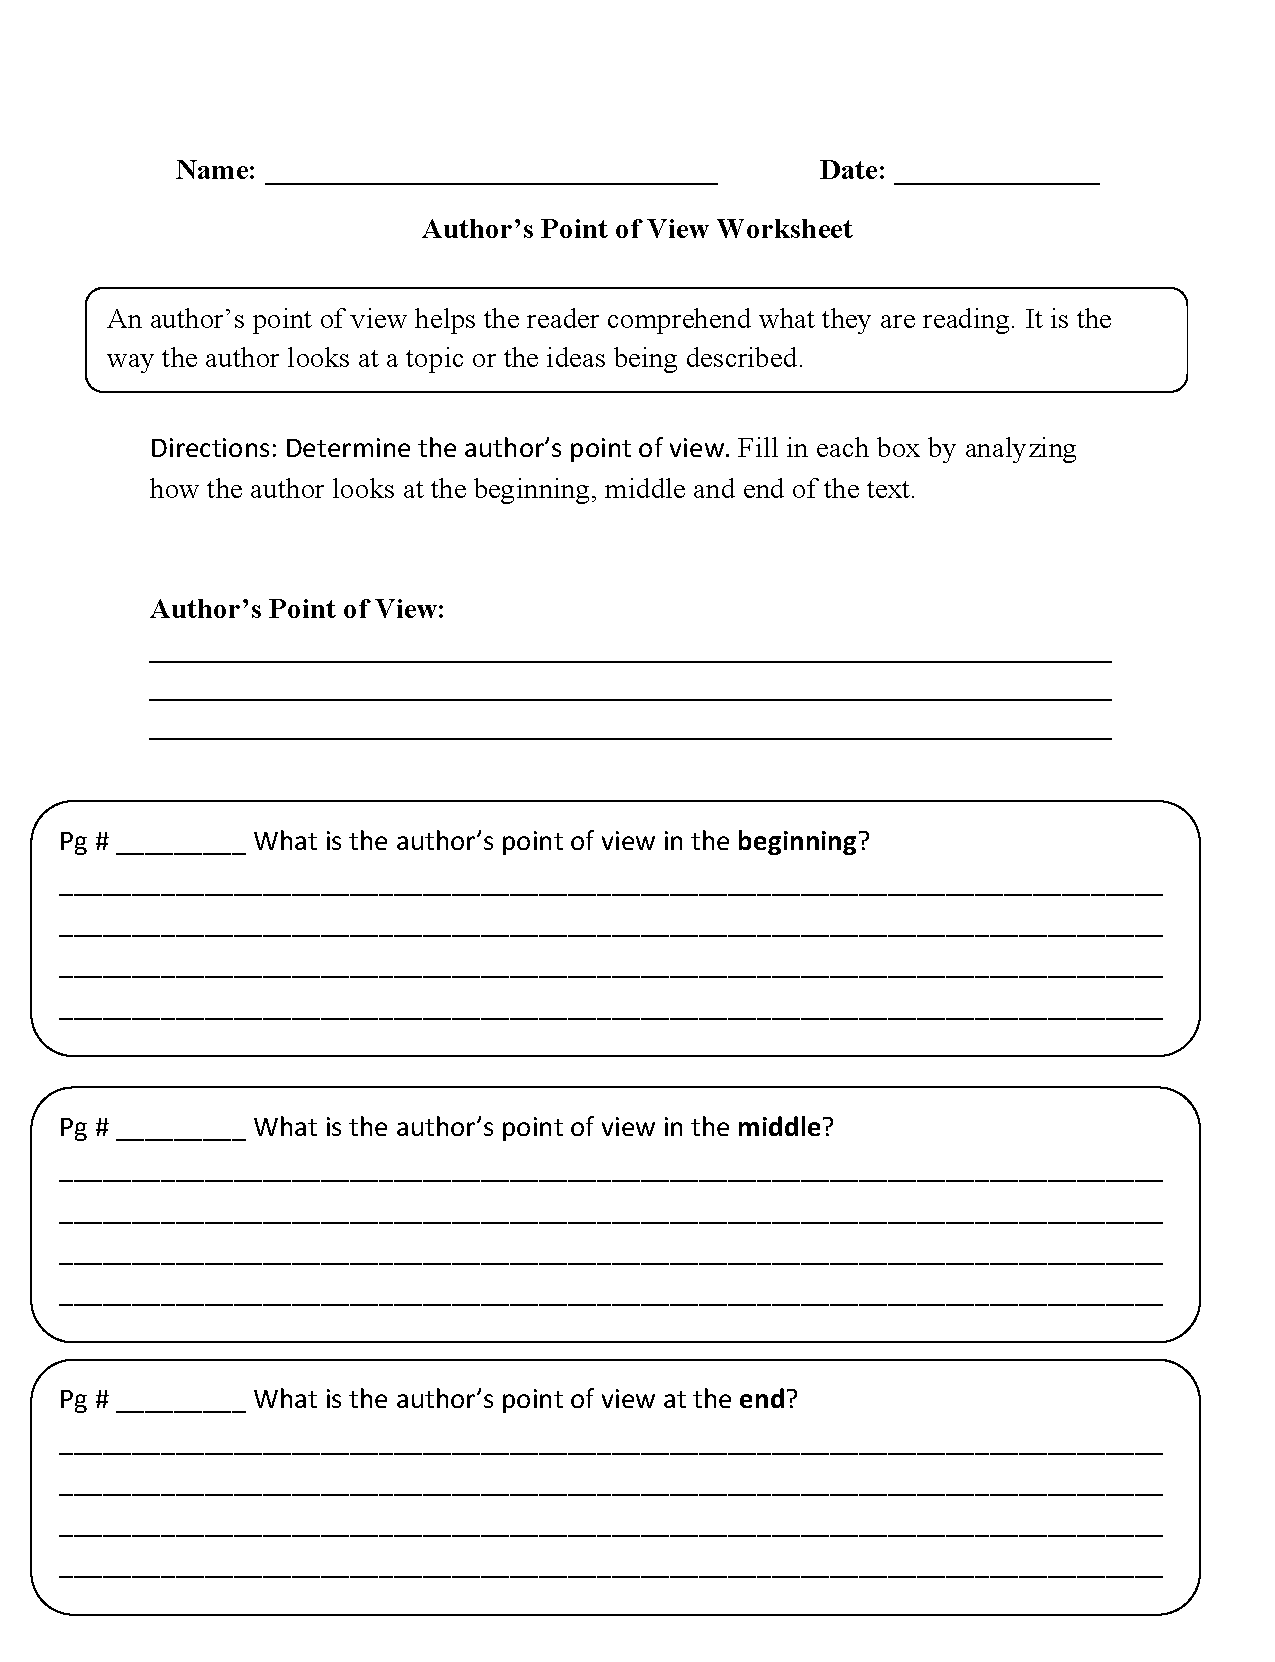 Proatmealus  Unusual Englishlinxcom  Point Of View Worksheets With Engaging Point Of View Worksheets With Amazing Point Of View Worksheets Grade  Also Wwi Worksheet In Addition Meal Tracker Worksheet And Charlotte Web Worksheets As Well As Scatter Plot Trend Line Worksheet Additionally L Blend Worksheet From Englishlinxcom With Proatmealus  Engaging Englishlinxcom  Point Of View Worksheets With Amazing Point Of View Worksheets And Unusual Point Of View Worksheets Grade  Also Wwi Worksheet In Addition Meal Tracker Worksheet From Englishlinxcom